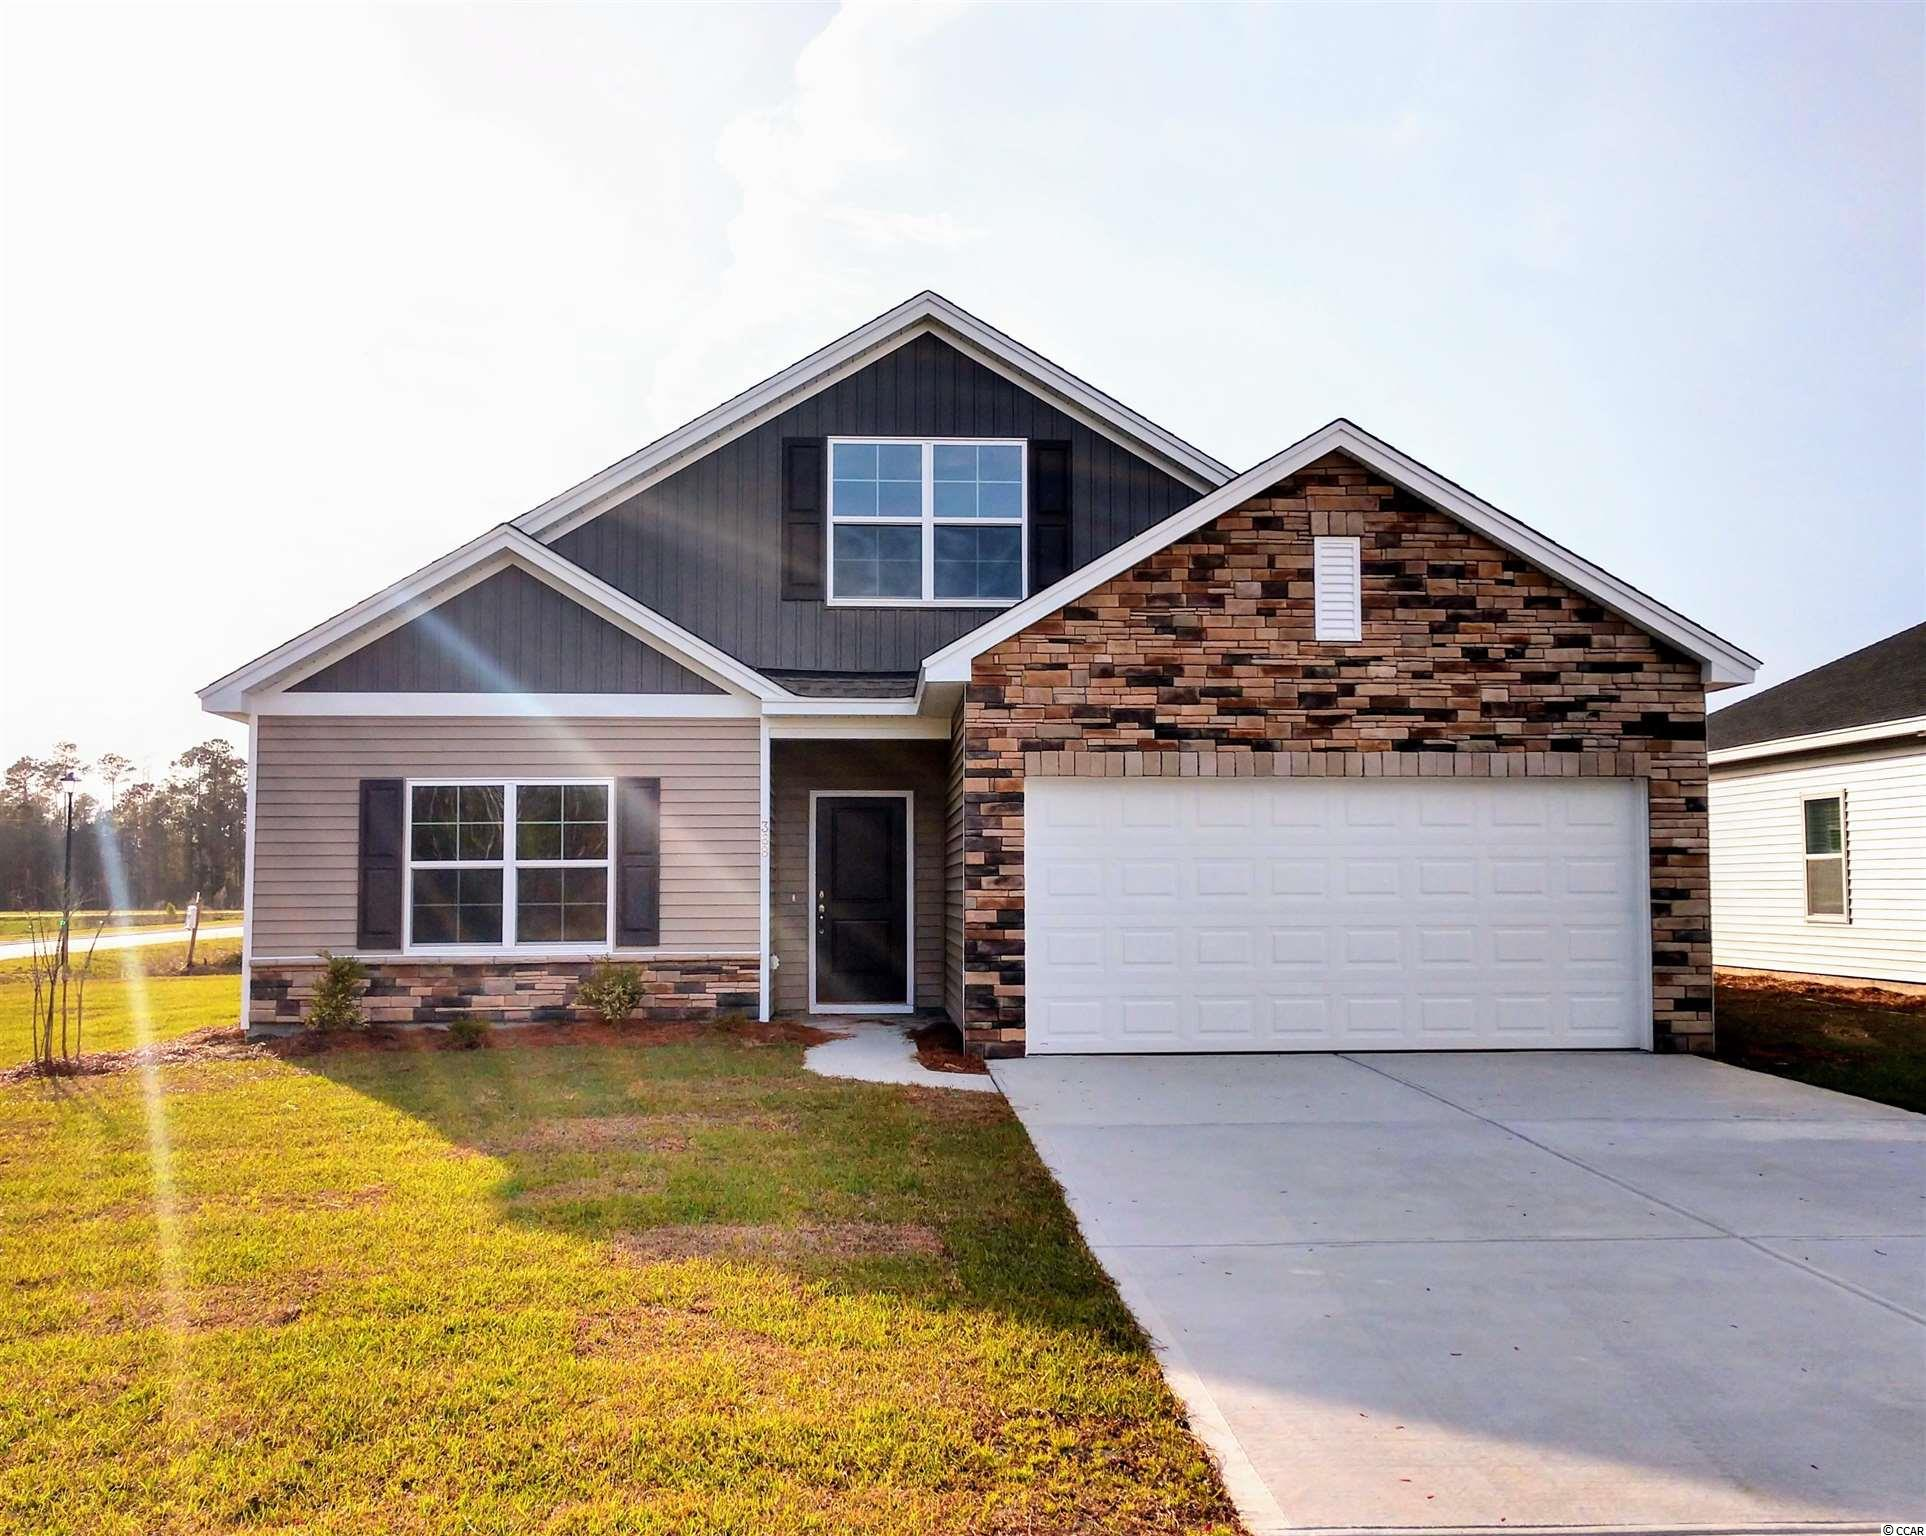 This home is under contract.  The Dorchester plan with bonus room offers 1,971 htd sq ft An open floor-plan, 3 bedrooms, 2 baths, with Covered Porch. We offer 6 other home plans, from 1,655 to 2,771 Htd SF, 3-6 bedrooms, 2-4 baths, we're sure to have the right home for your buyer!  All homes have 2 car garages. Included features: Advanced Framing; Gas heat; Tank-less Gas hot water; Recessed Ceiling lights in Kitchen; GE Appliances; Kitchen Granite counter tops; Programmable Thermostats; Opt 9' ceilings on first floor; Energy Efficient with LED bulbs, 14-SEER HVAC system, Air Barrier, and Sealing; Architectural Roof Shingles; Vinyl siding with Lifetime Warranty. Buy with Peace of Mind with Nationally Recognized Customer Service Care and all homes are backed by the QBW 2-10 year Warranty. Renderings and photos are shown with options.